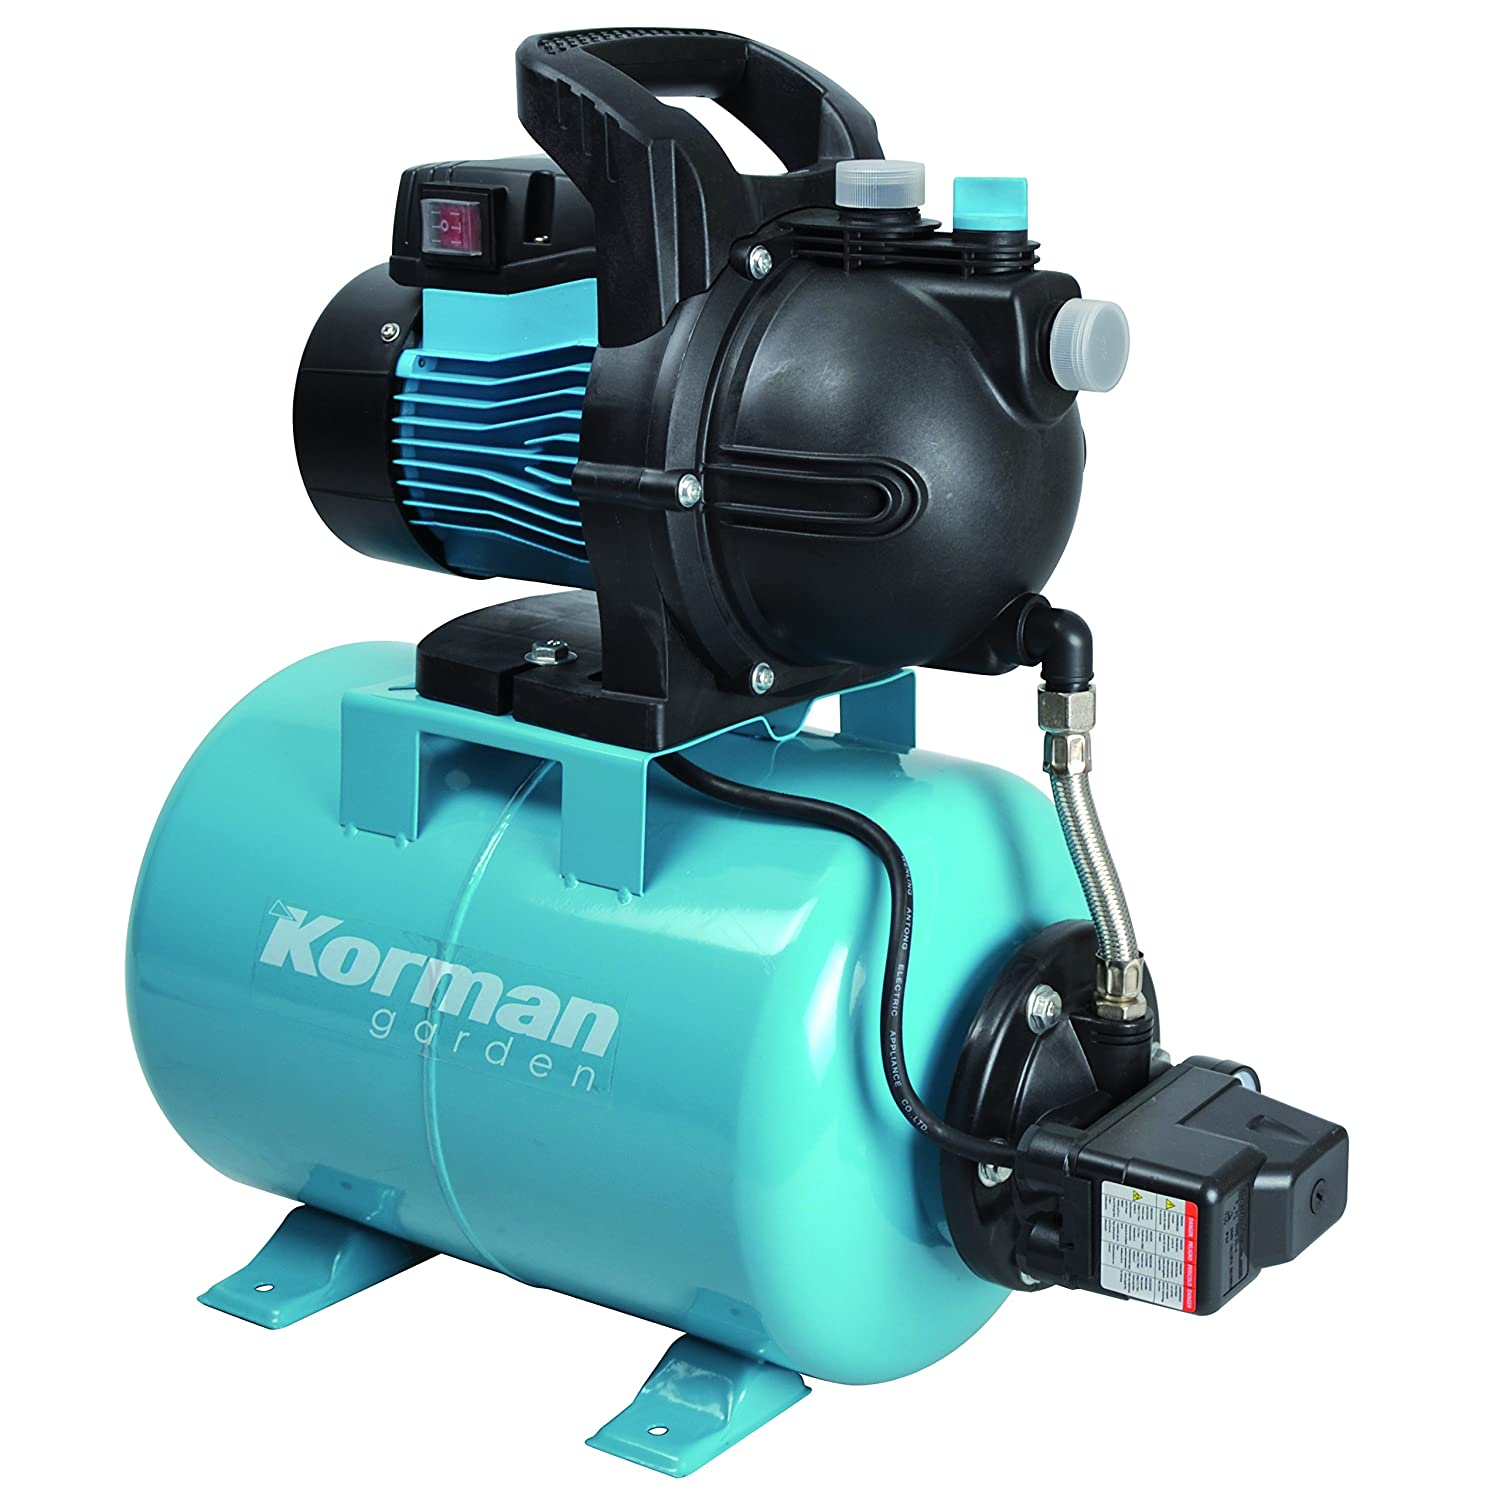 Korman Garden 500393-groupe de pression (l 1300 W 24 NORYL) Unifirst